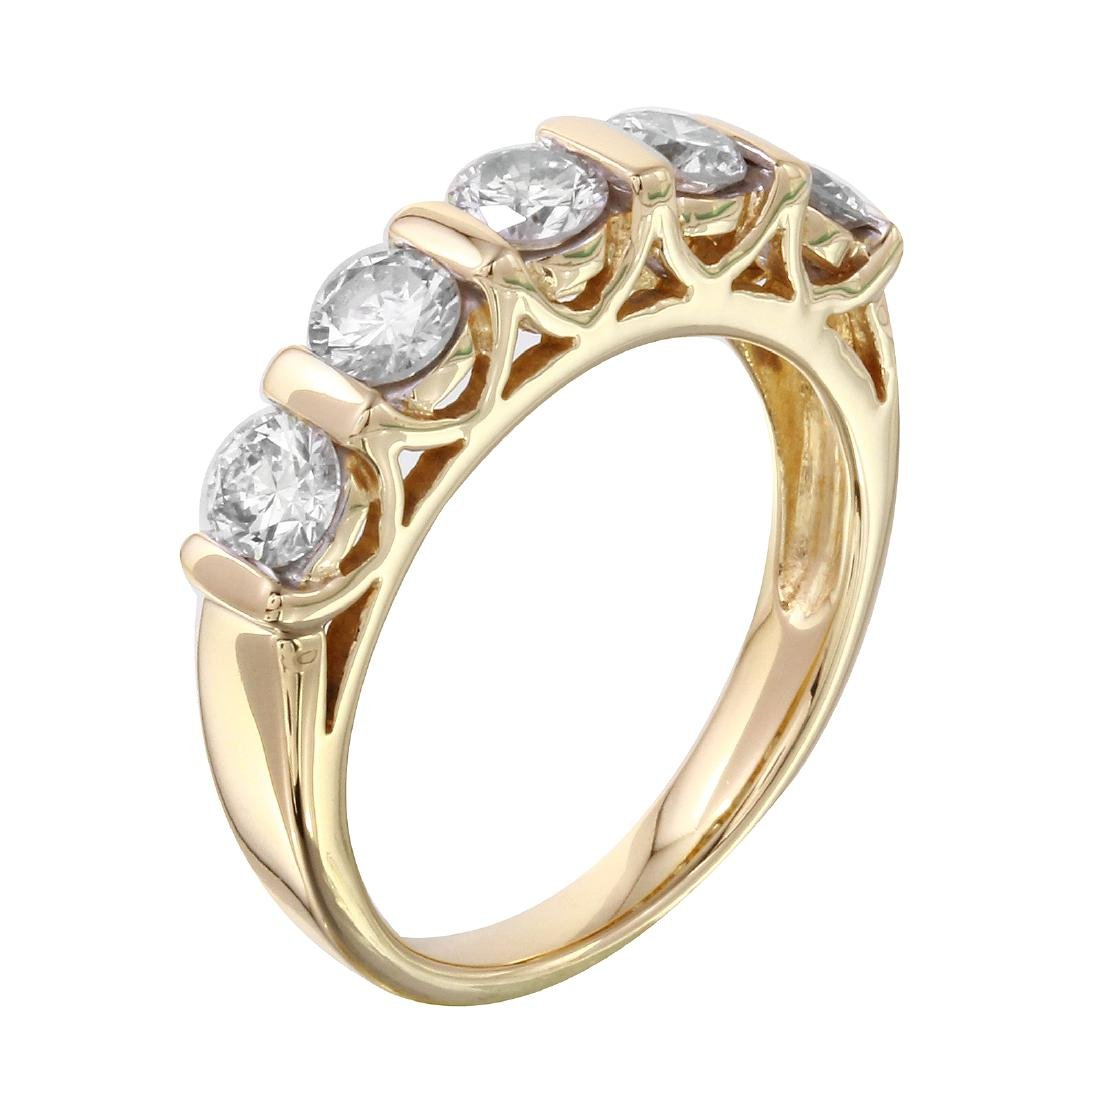 14KT Yellow Gold Diamond Ring - 4